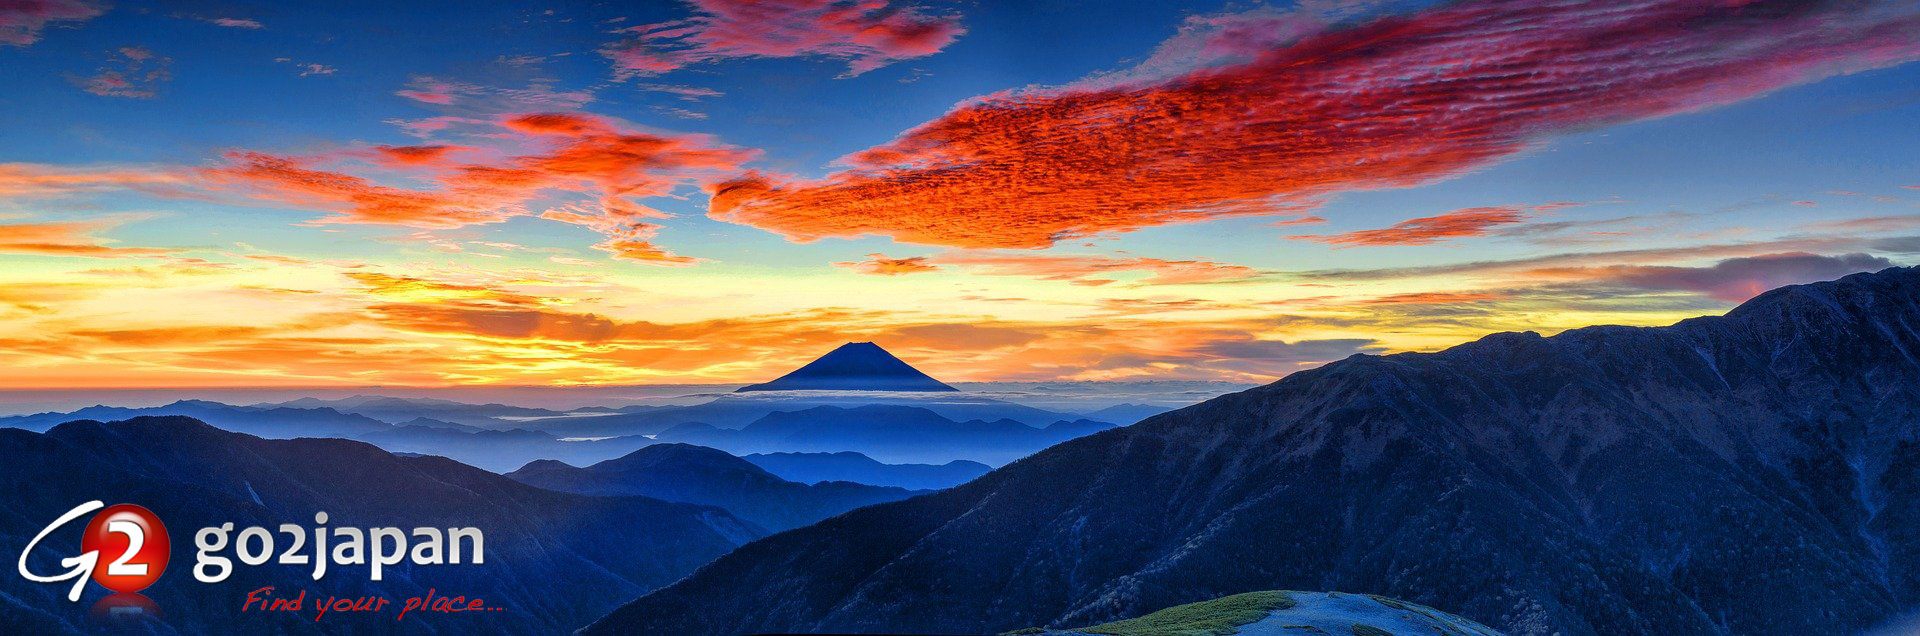 go2japan: find your place. (Mt. Fuji volcano is courtesy of Kanenori on Pixabay.)